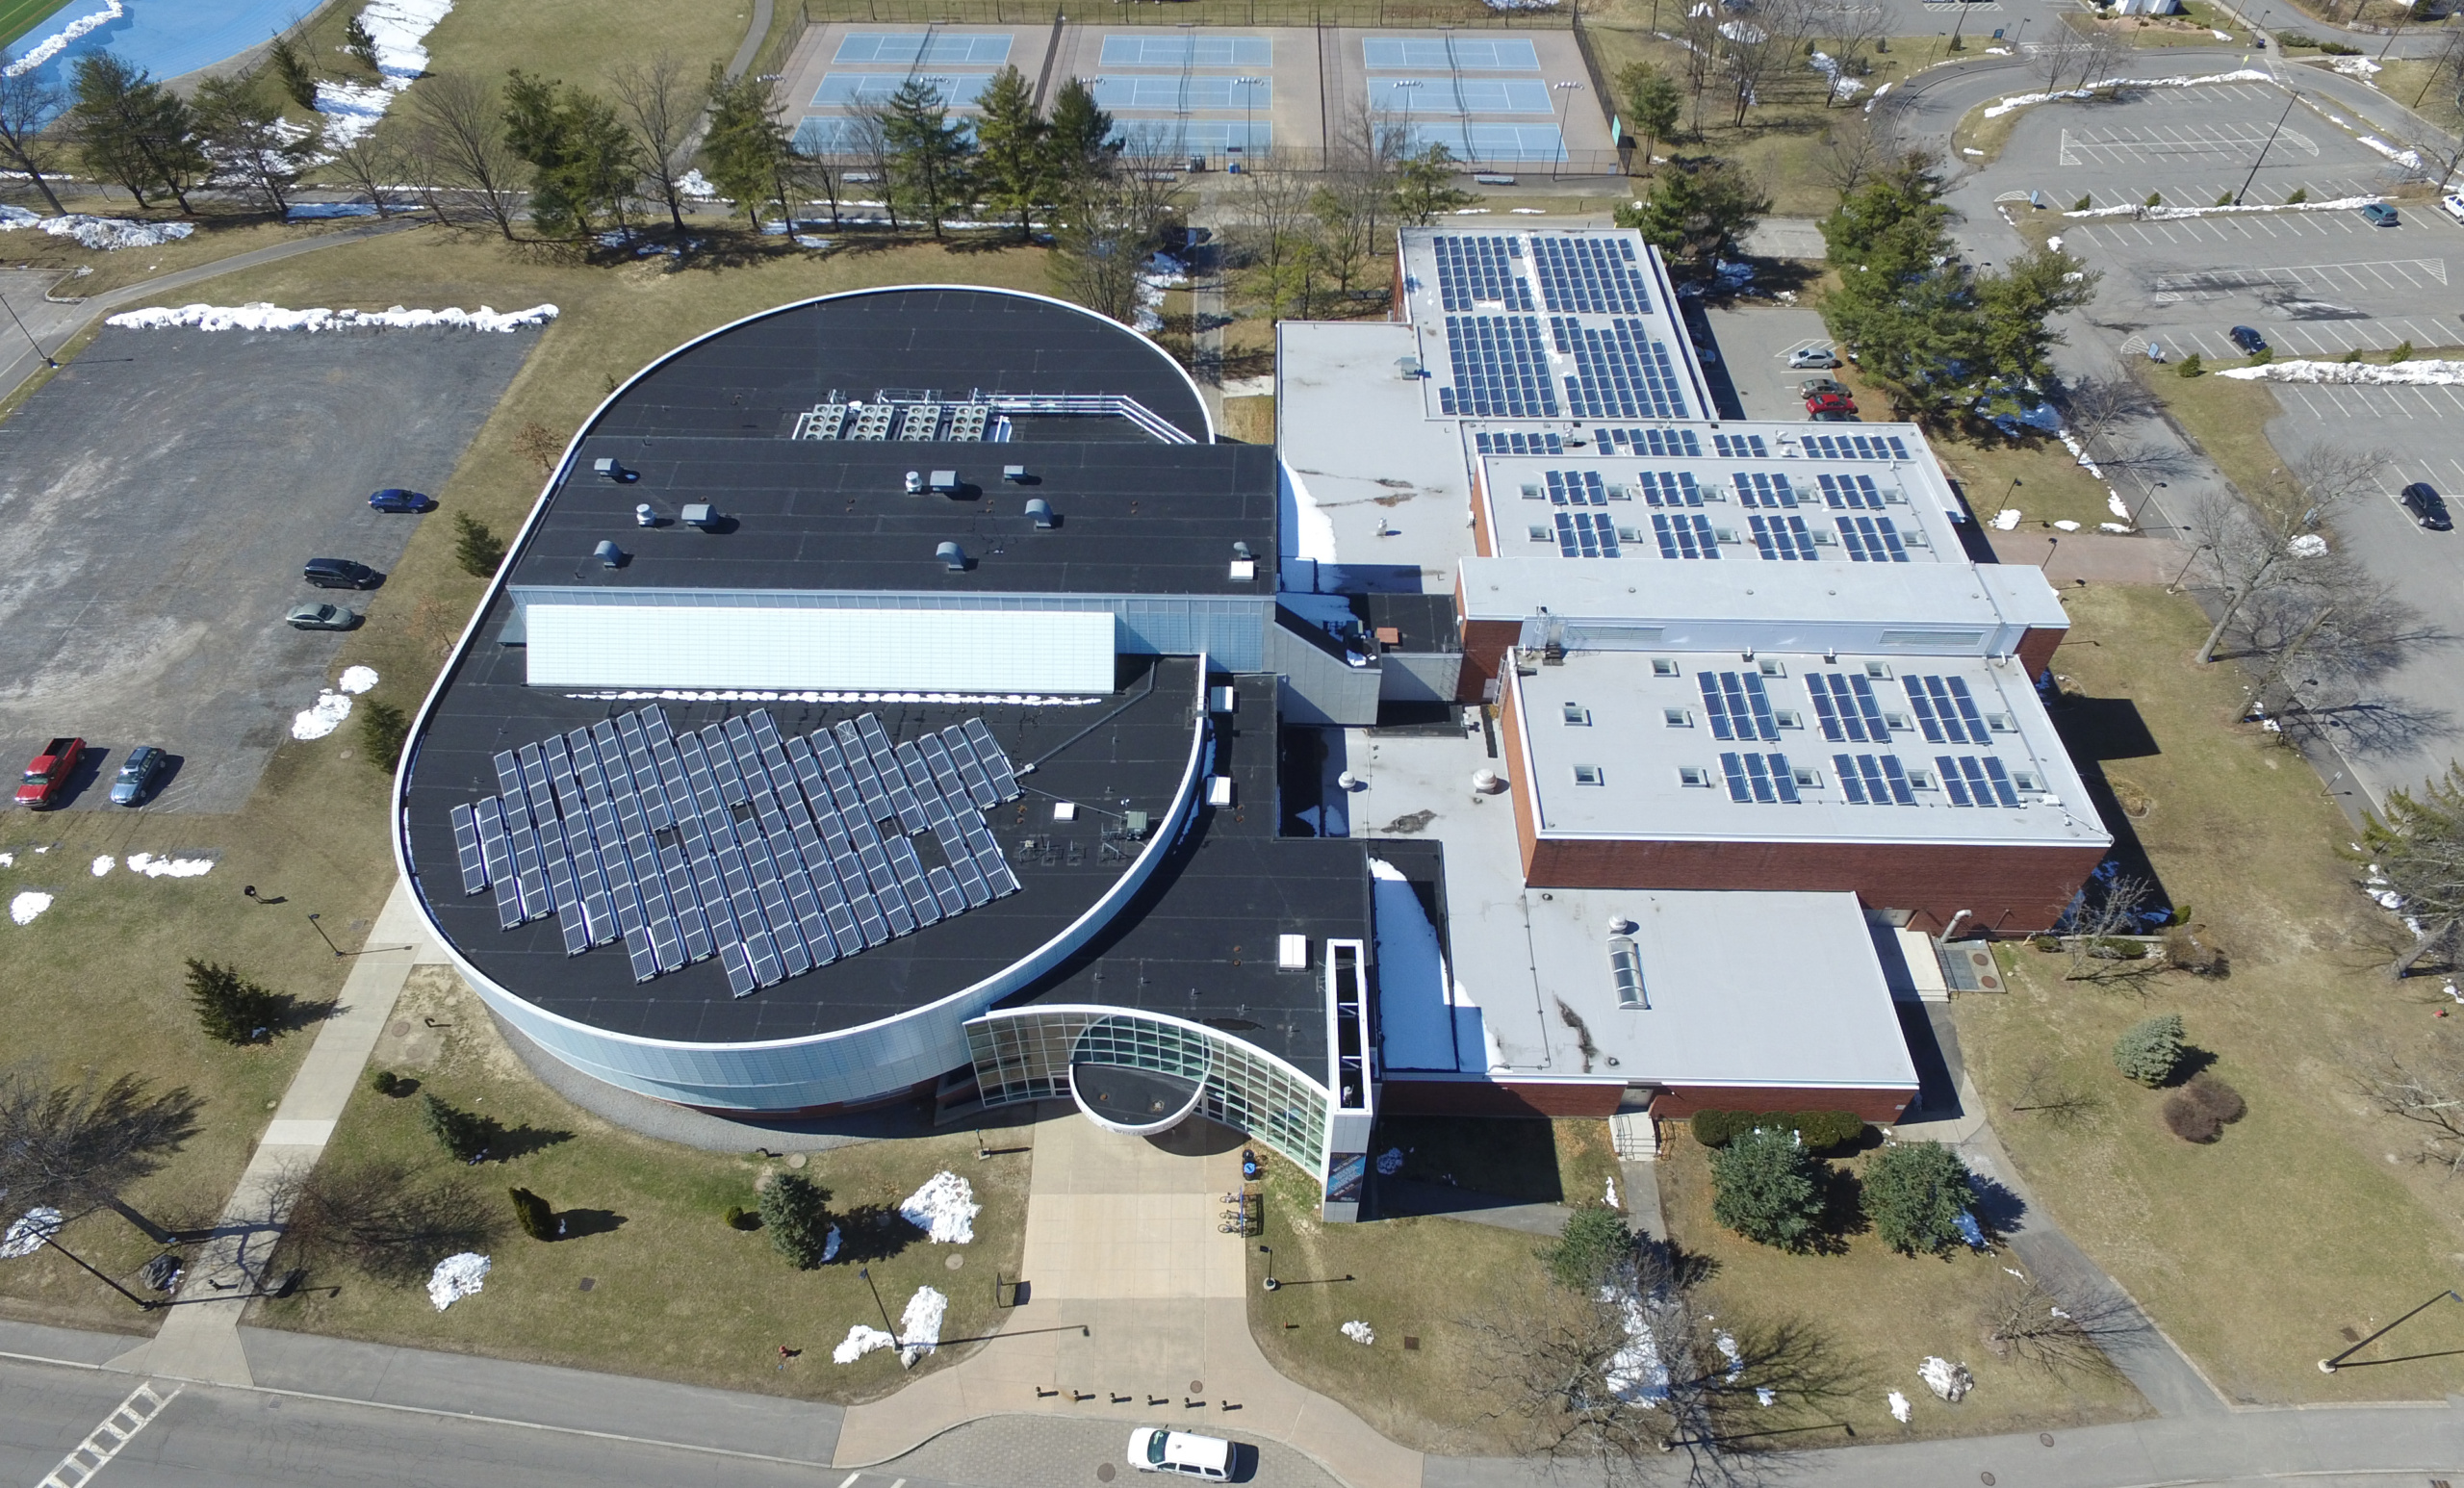 An aerial view of solar arrays on a SUNY New Paltz building rooftop.